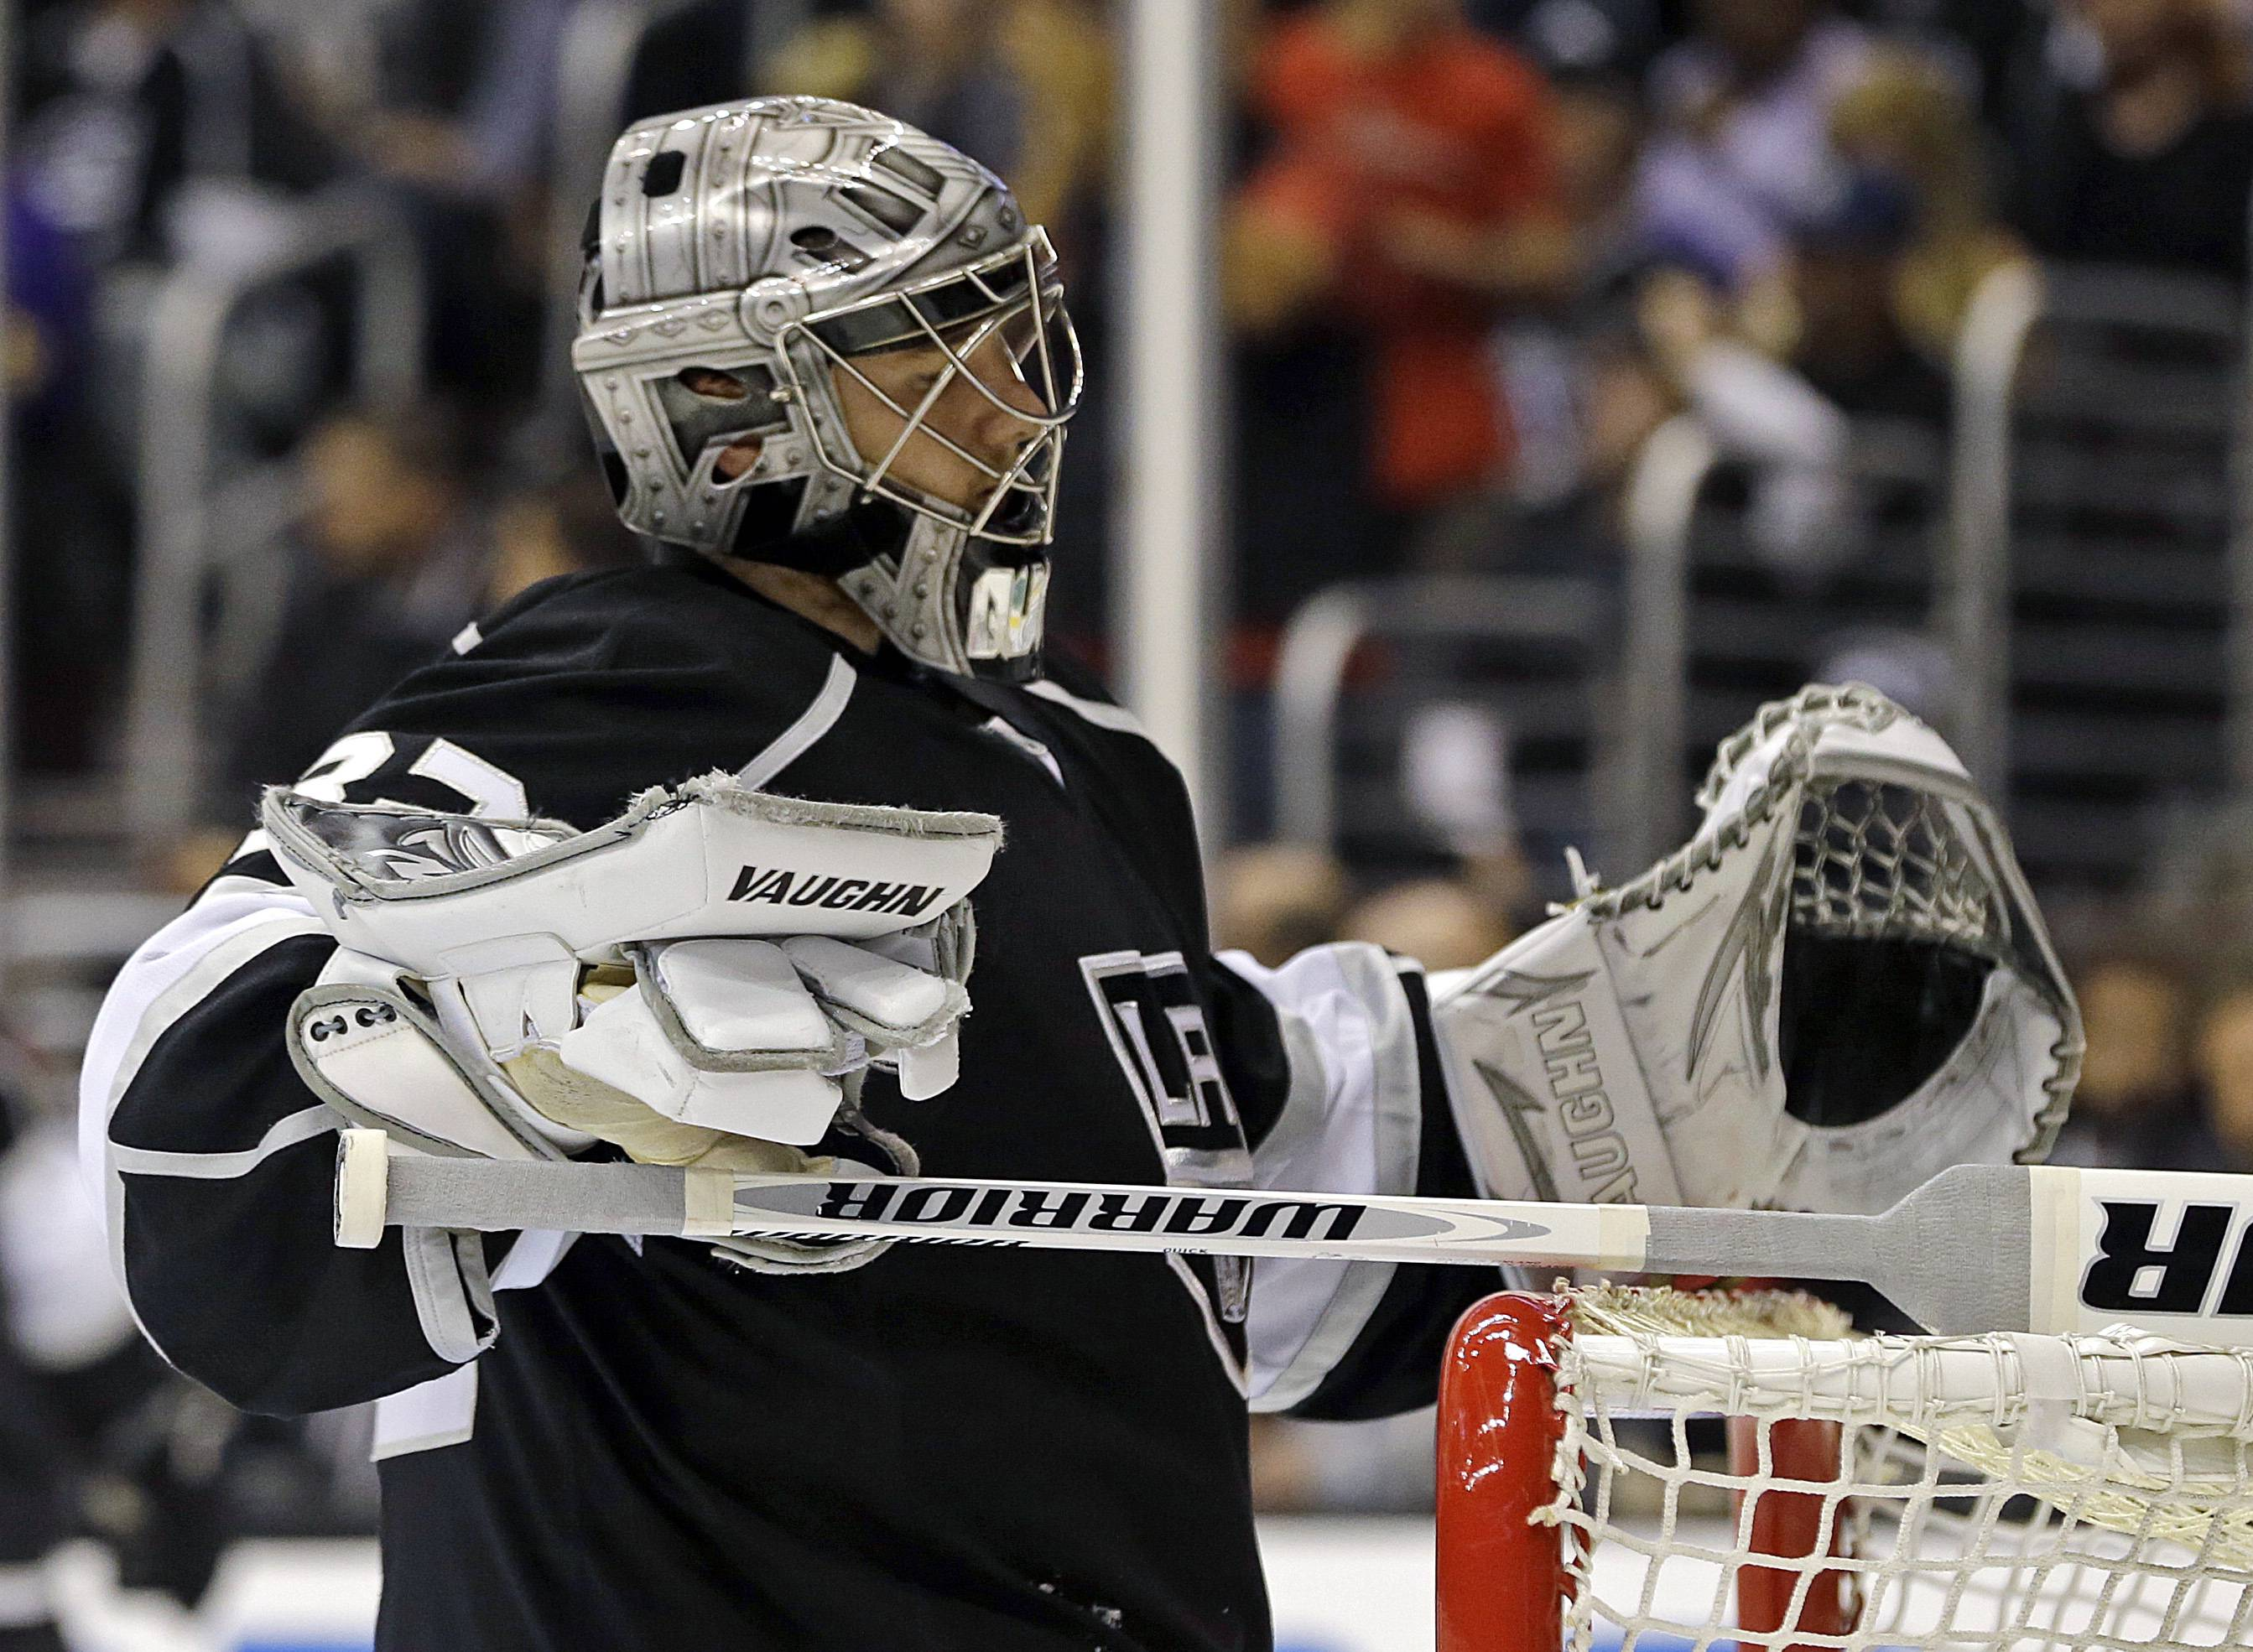 Los Angeles Kings goalie Jonathan Quick waits after a goal by the Chicago Blackhawks in the third period of Game 4 of the NHL hockey Stanley Cup playoffs Western Conference finals, in Los Angeles Thursday, June 6, 2013. The Blackhawks won 3-2.